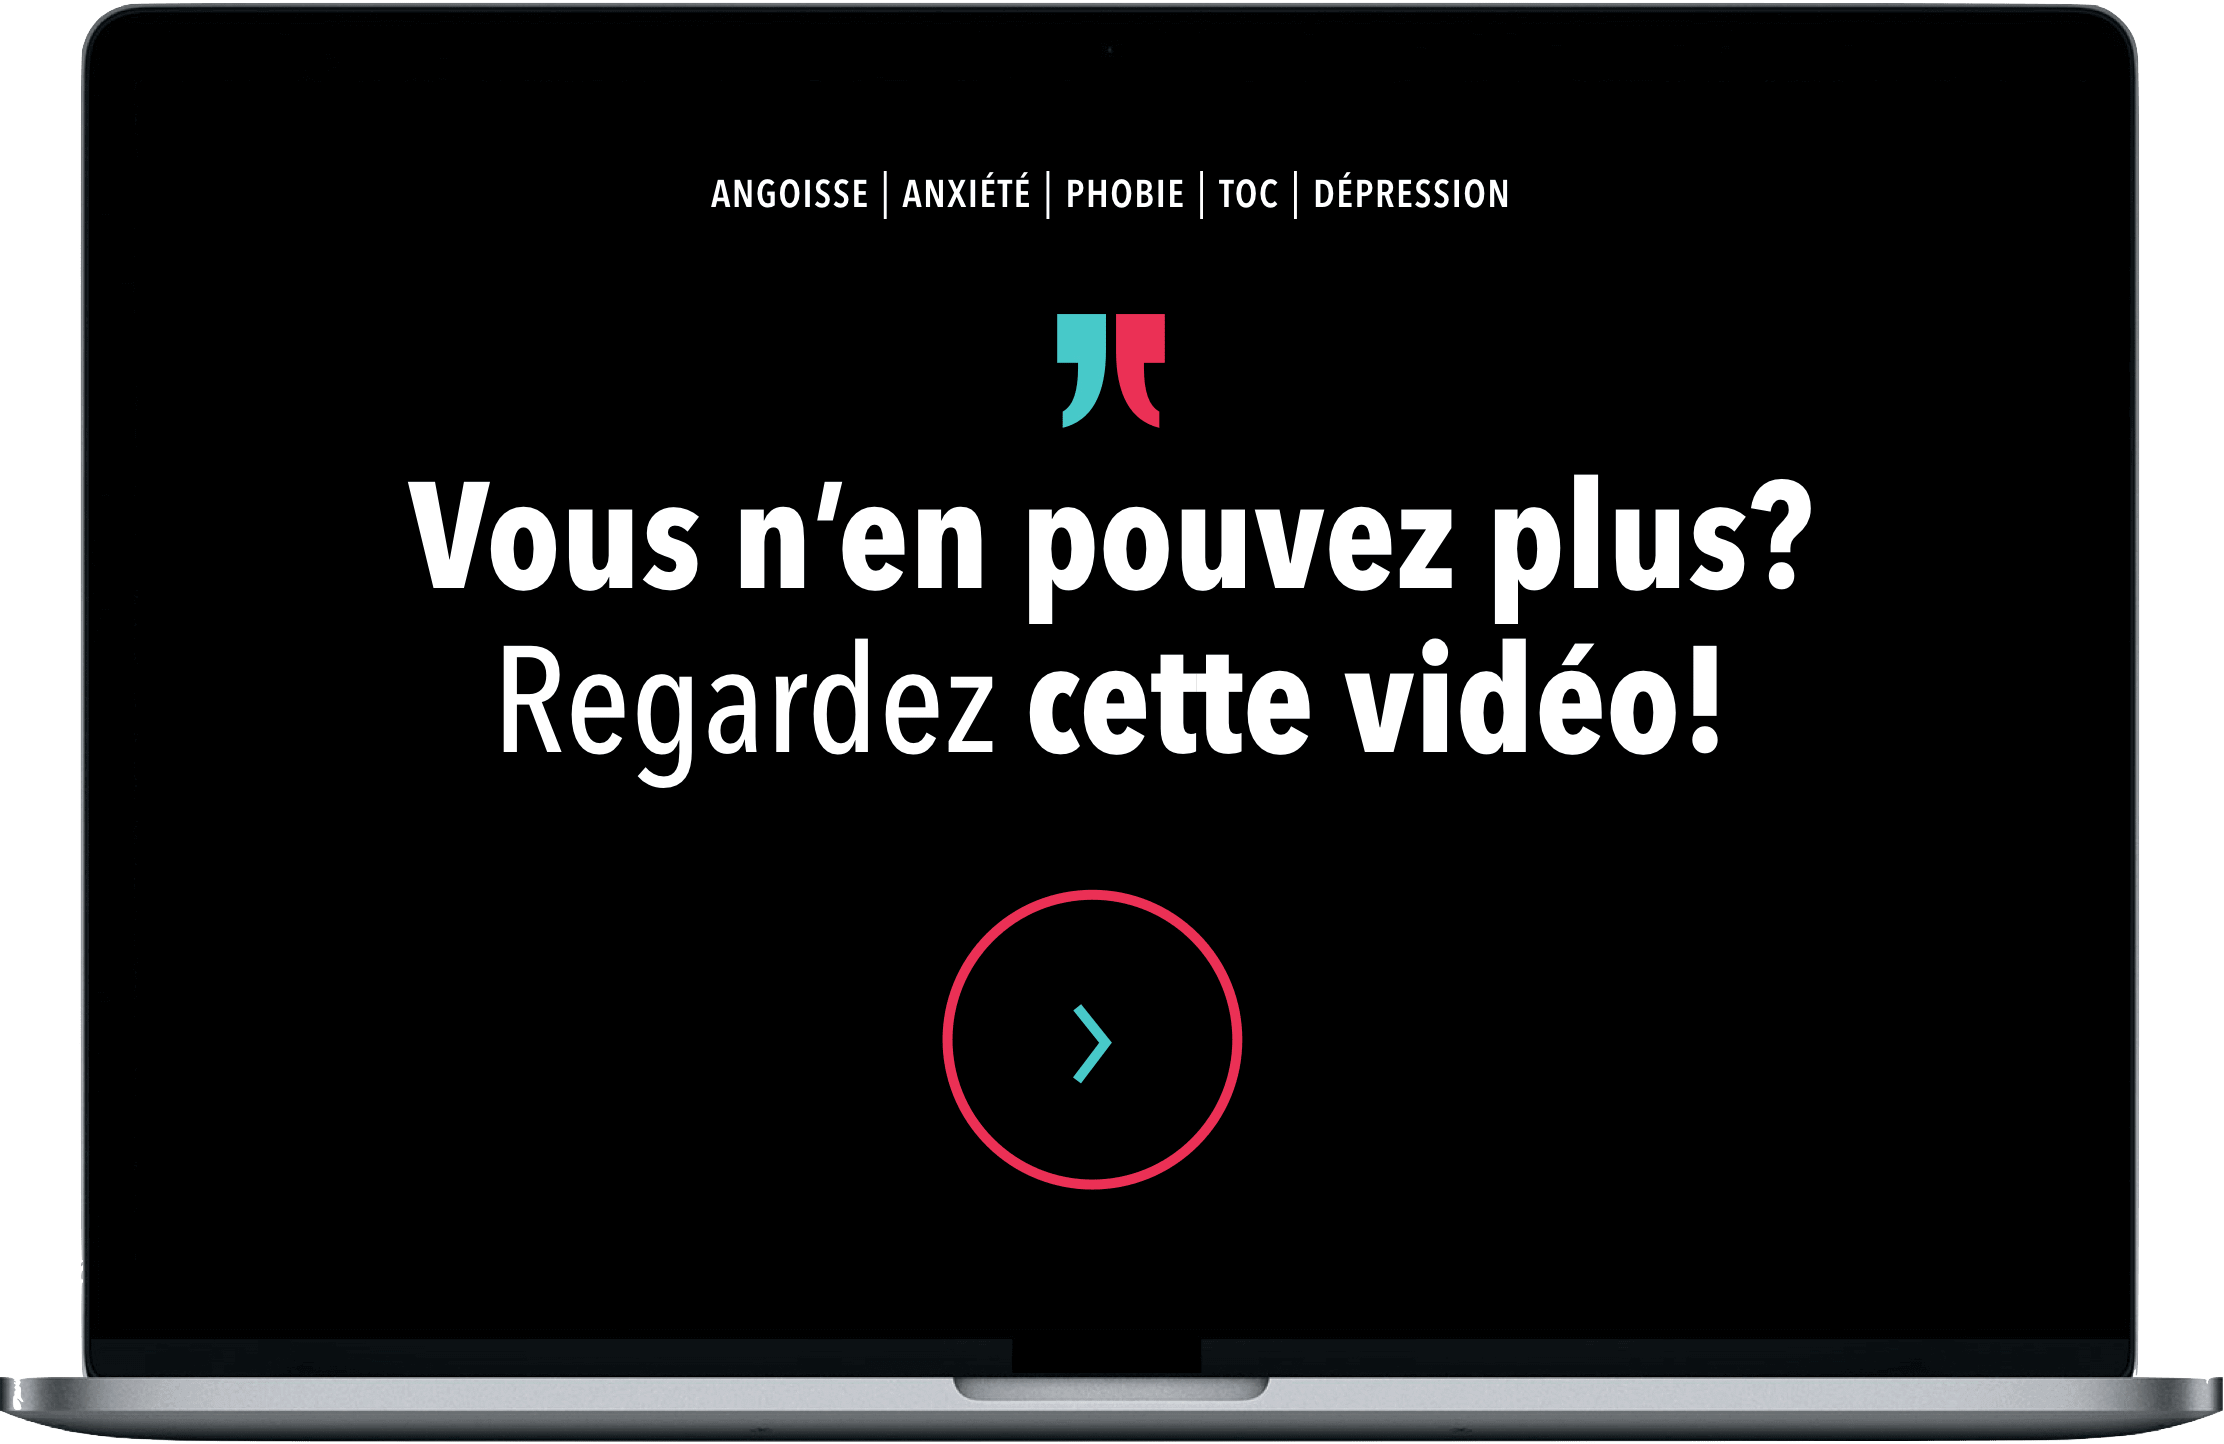 Vous souffrez d'angoisse, d'anxiété, de phobie, de dépression, ou de toc? Découvrez une solution révolutionnaire